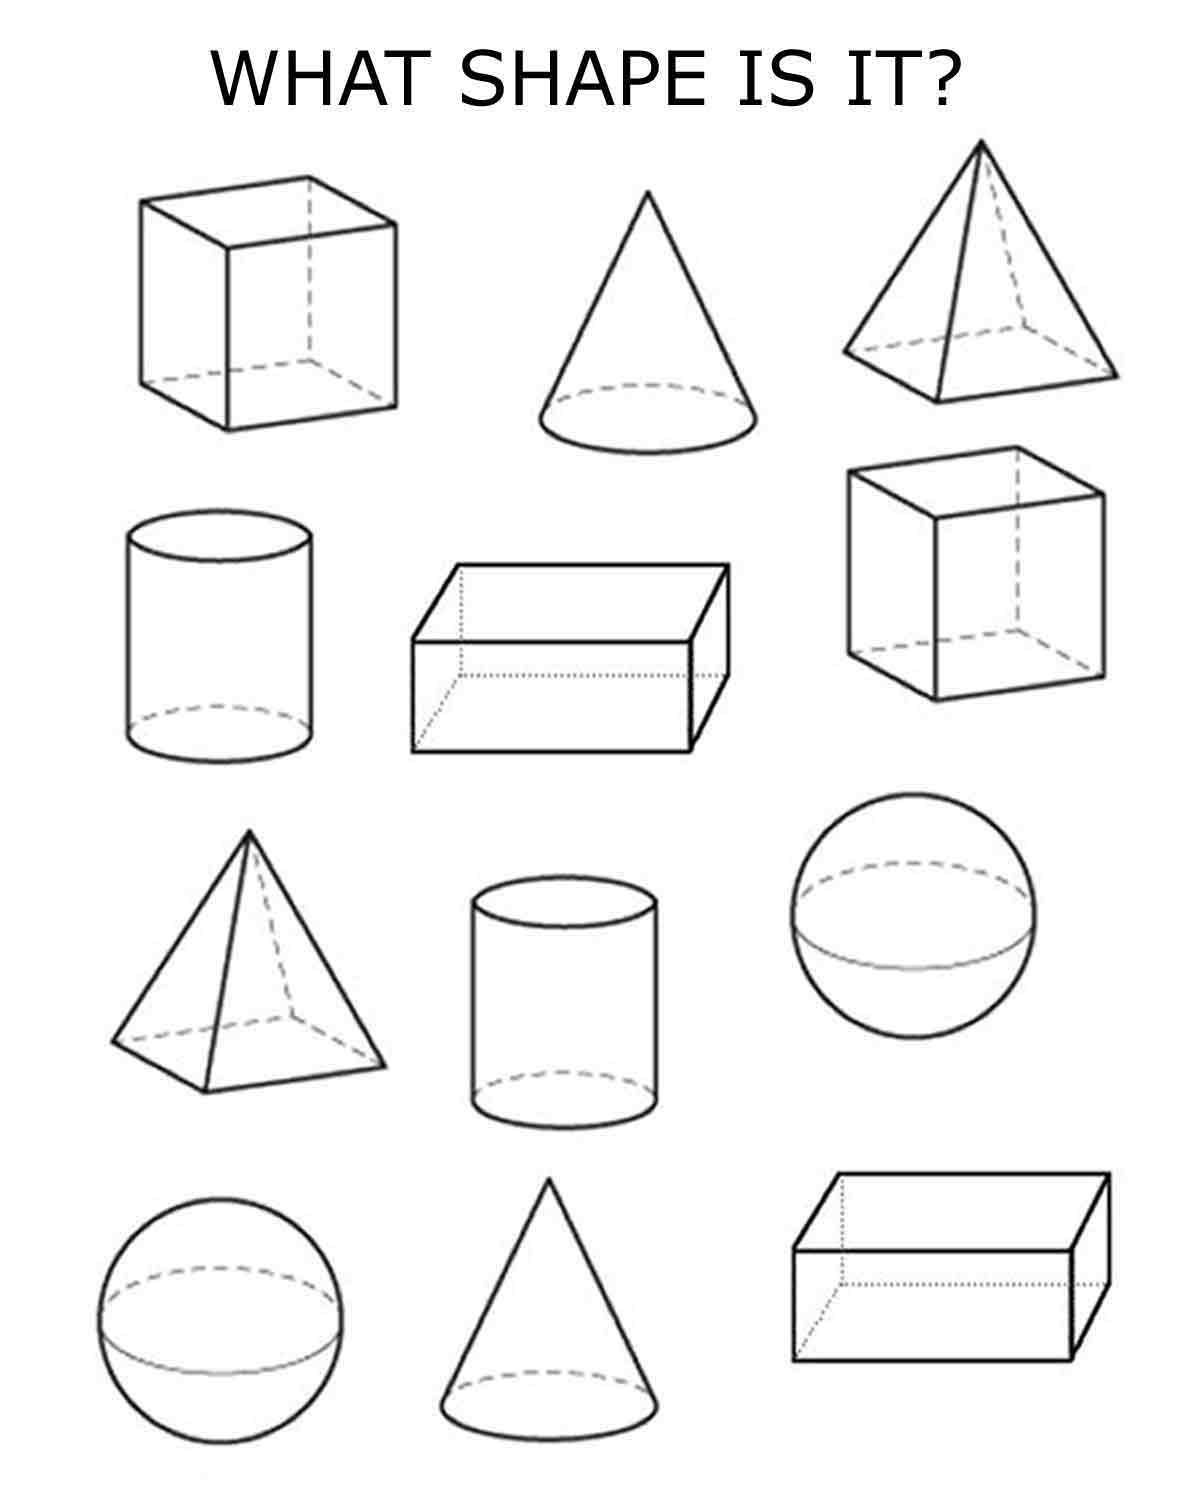 worksheet Solid And Plane Shapes Worksheets 3d shapes homeschooling pinterest worksheets shapes